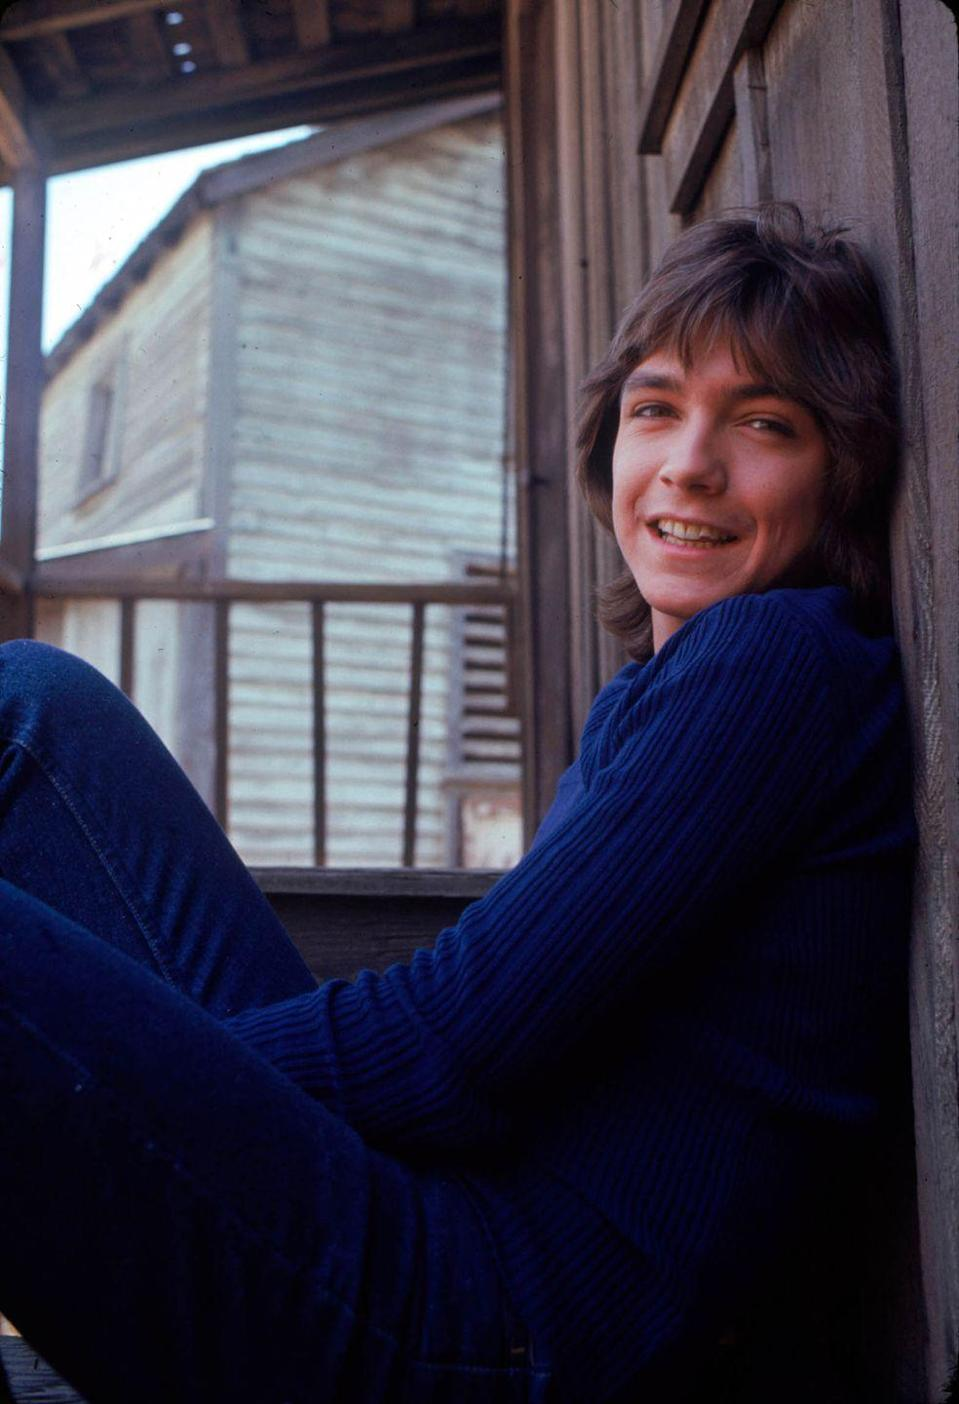 <p>David Cassidy, then the lead singer of The Partridge Family, in May 1971.</p>